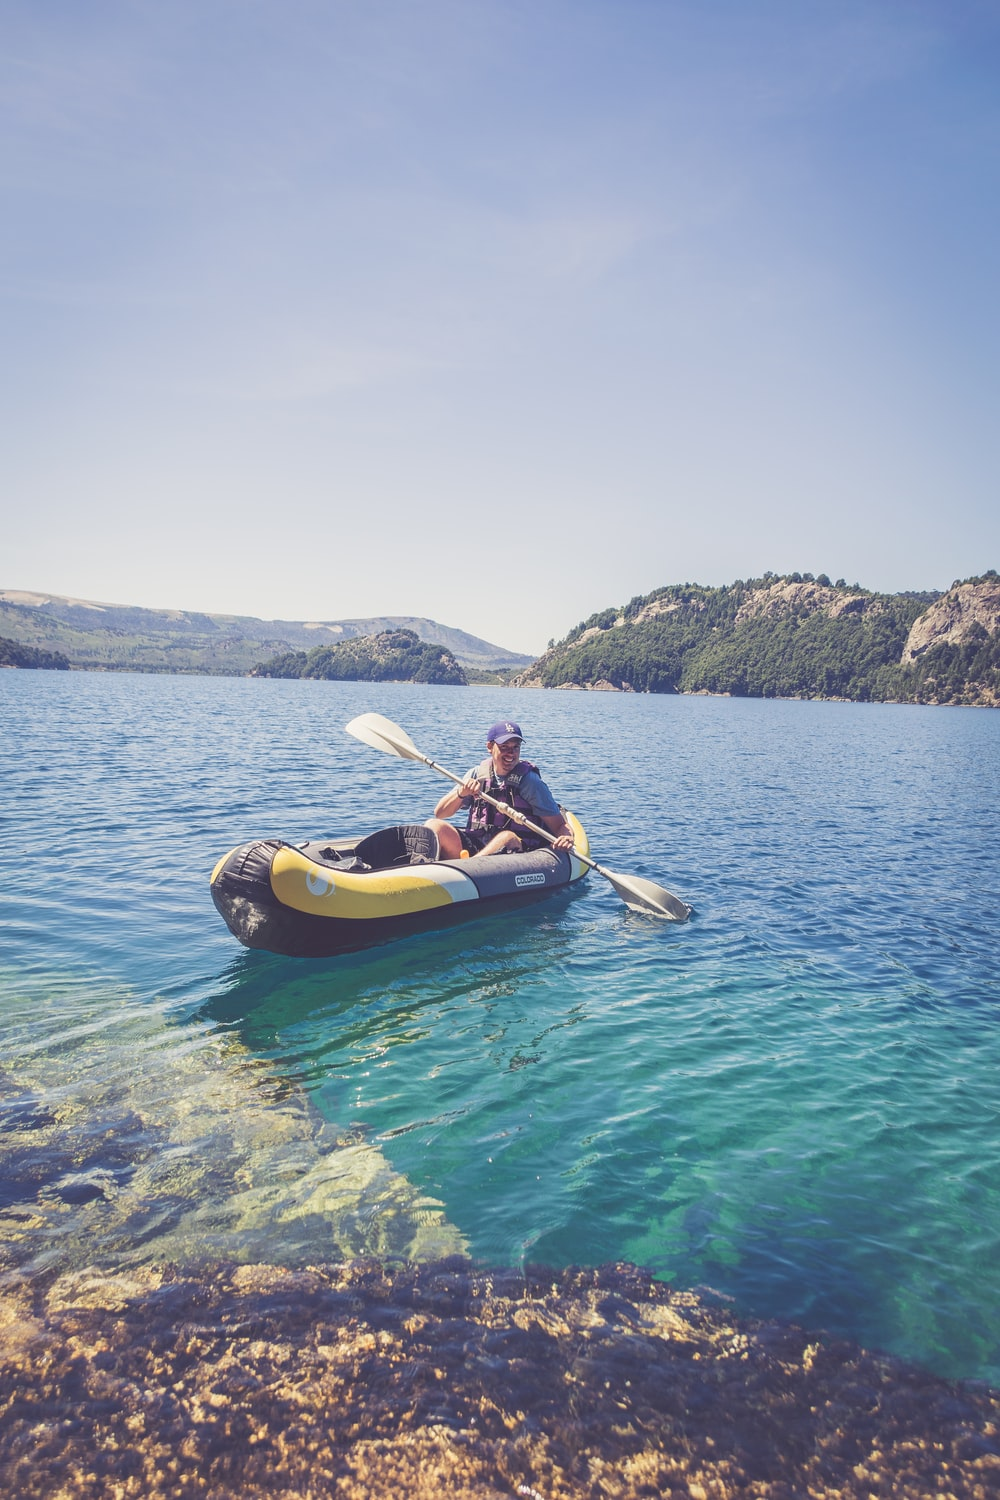 2 person riding on yellow kayak on blue sea during daytime